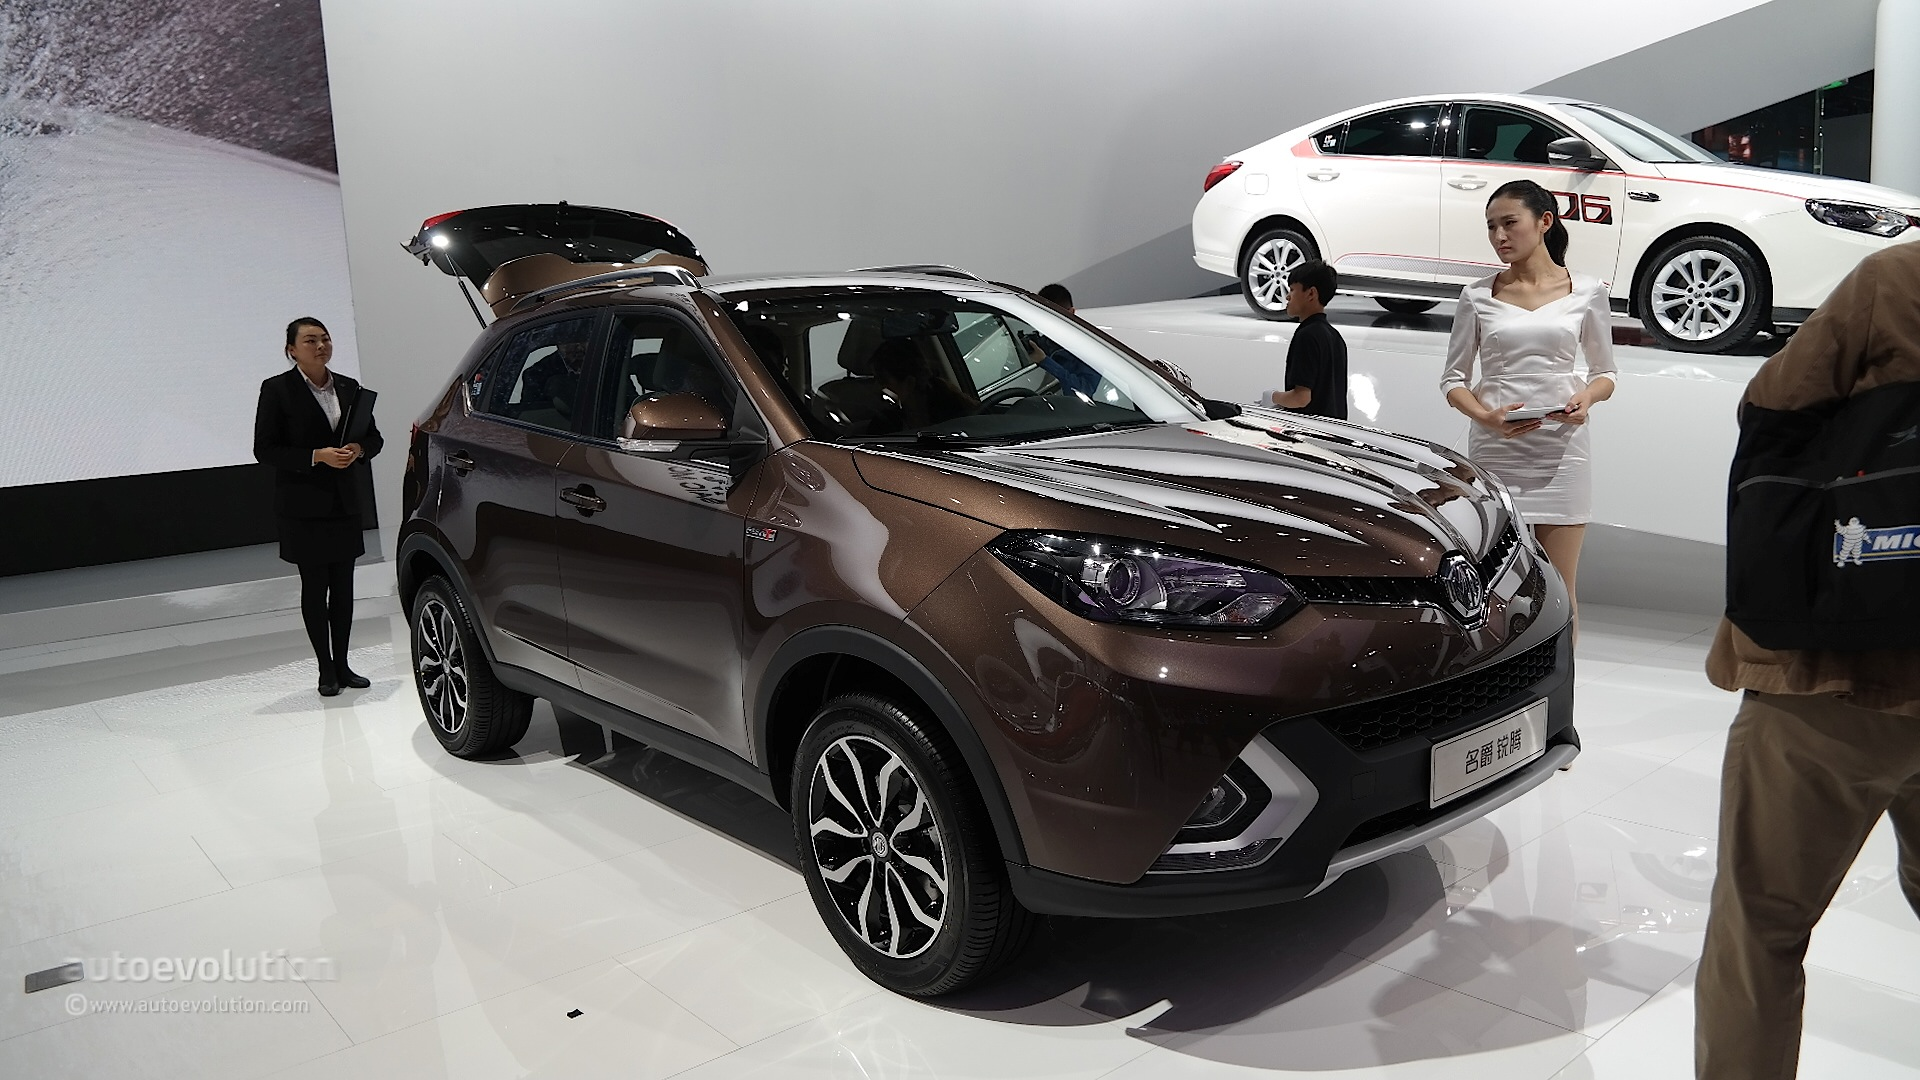 MG GS SUV Debuts in Shanghai with 1.5 and 2-Liter Turbo Engines